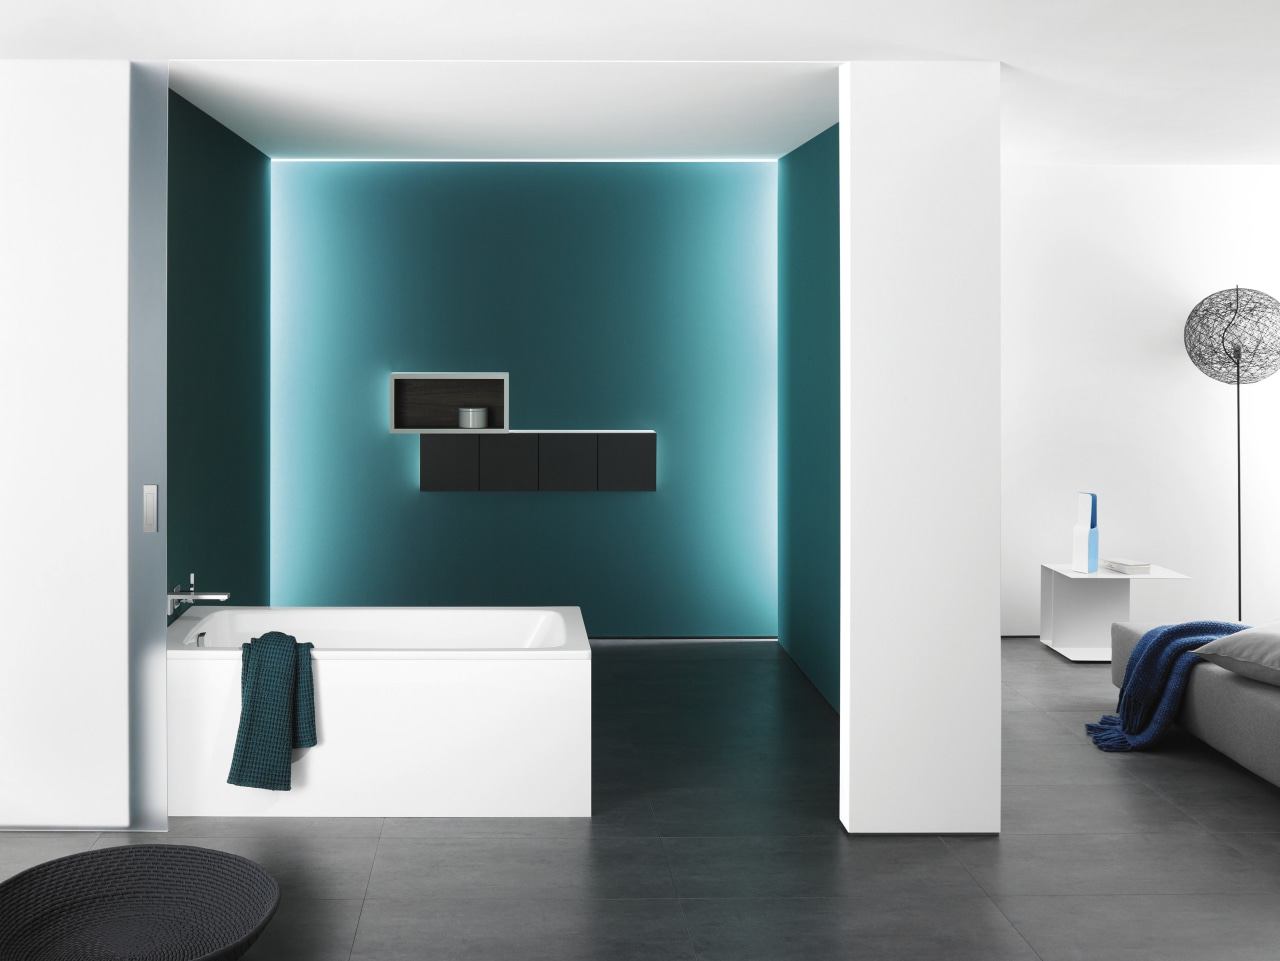 Other new products to Australian market include the bathroom, blue, floor, interior design, plumbing fixture, product design, room, tap, wall, white